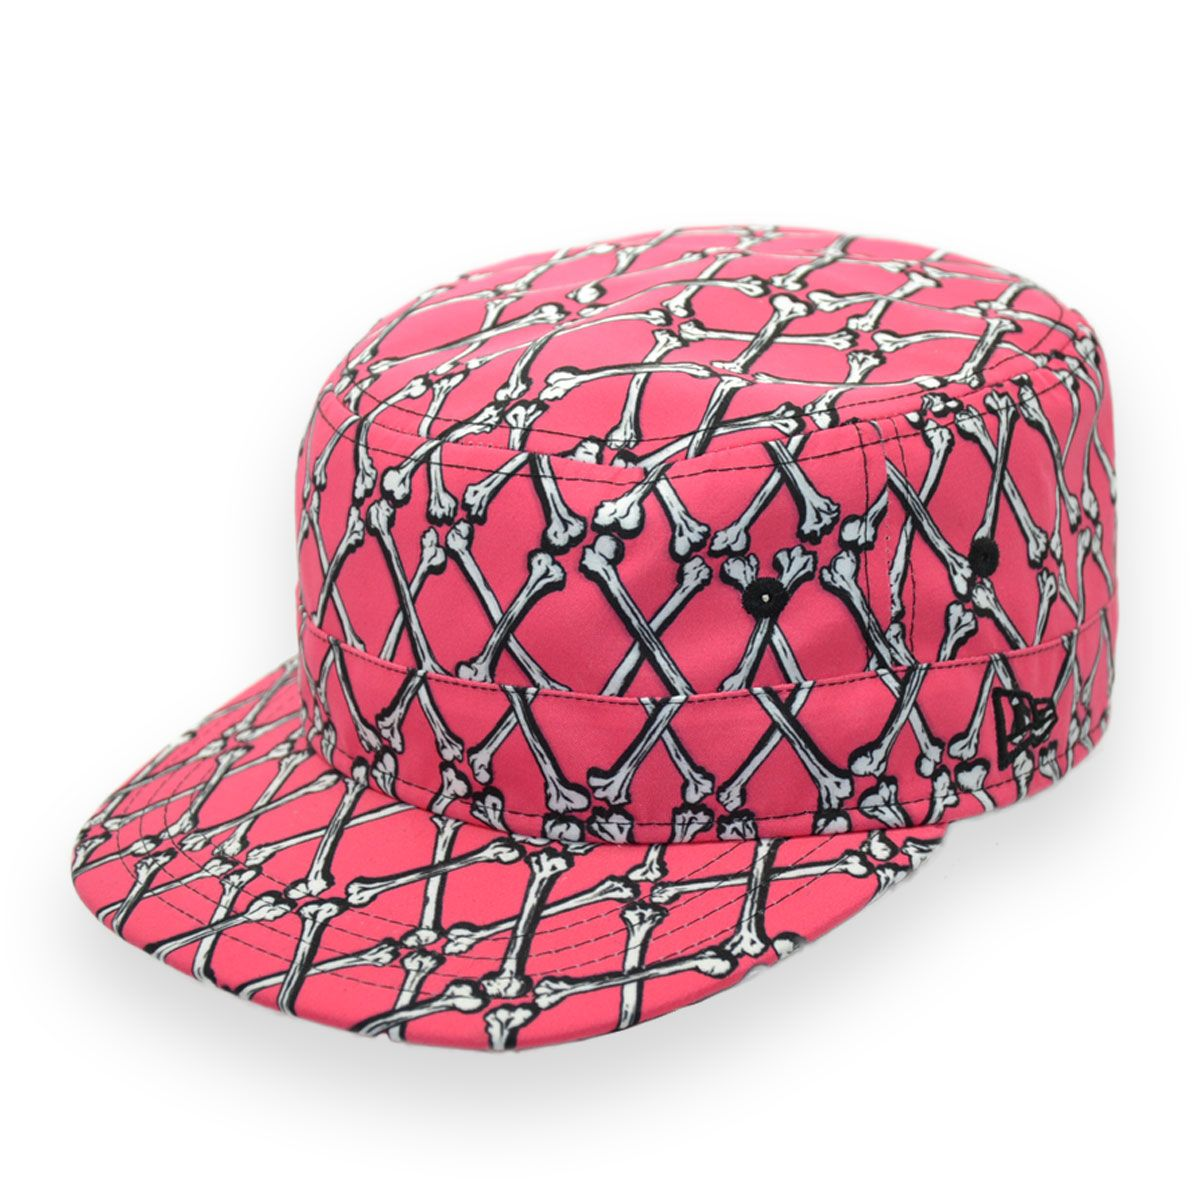 1df02b7c5dbc6 New Era Jeremy Scott Pink Cap New Era Authentic Brand Unisex Fitted Hat  100% Polyester